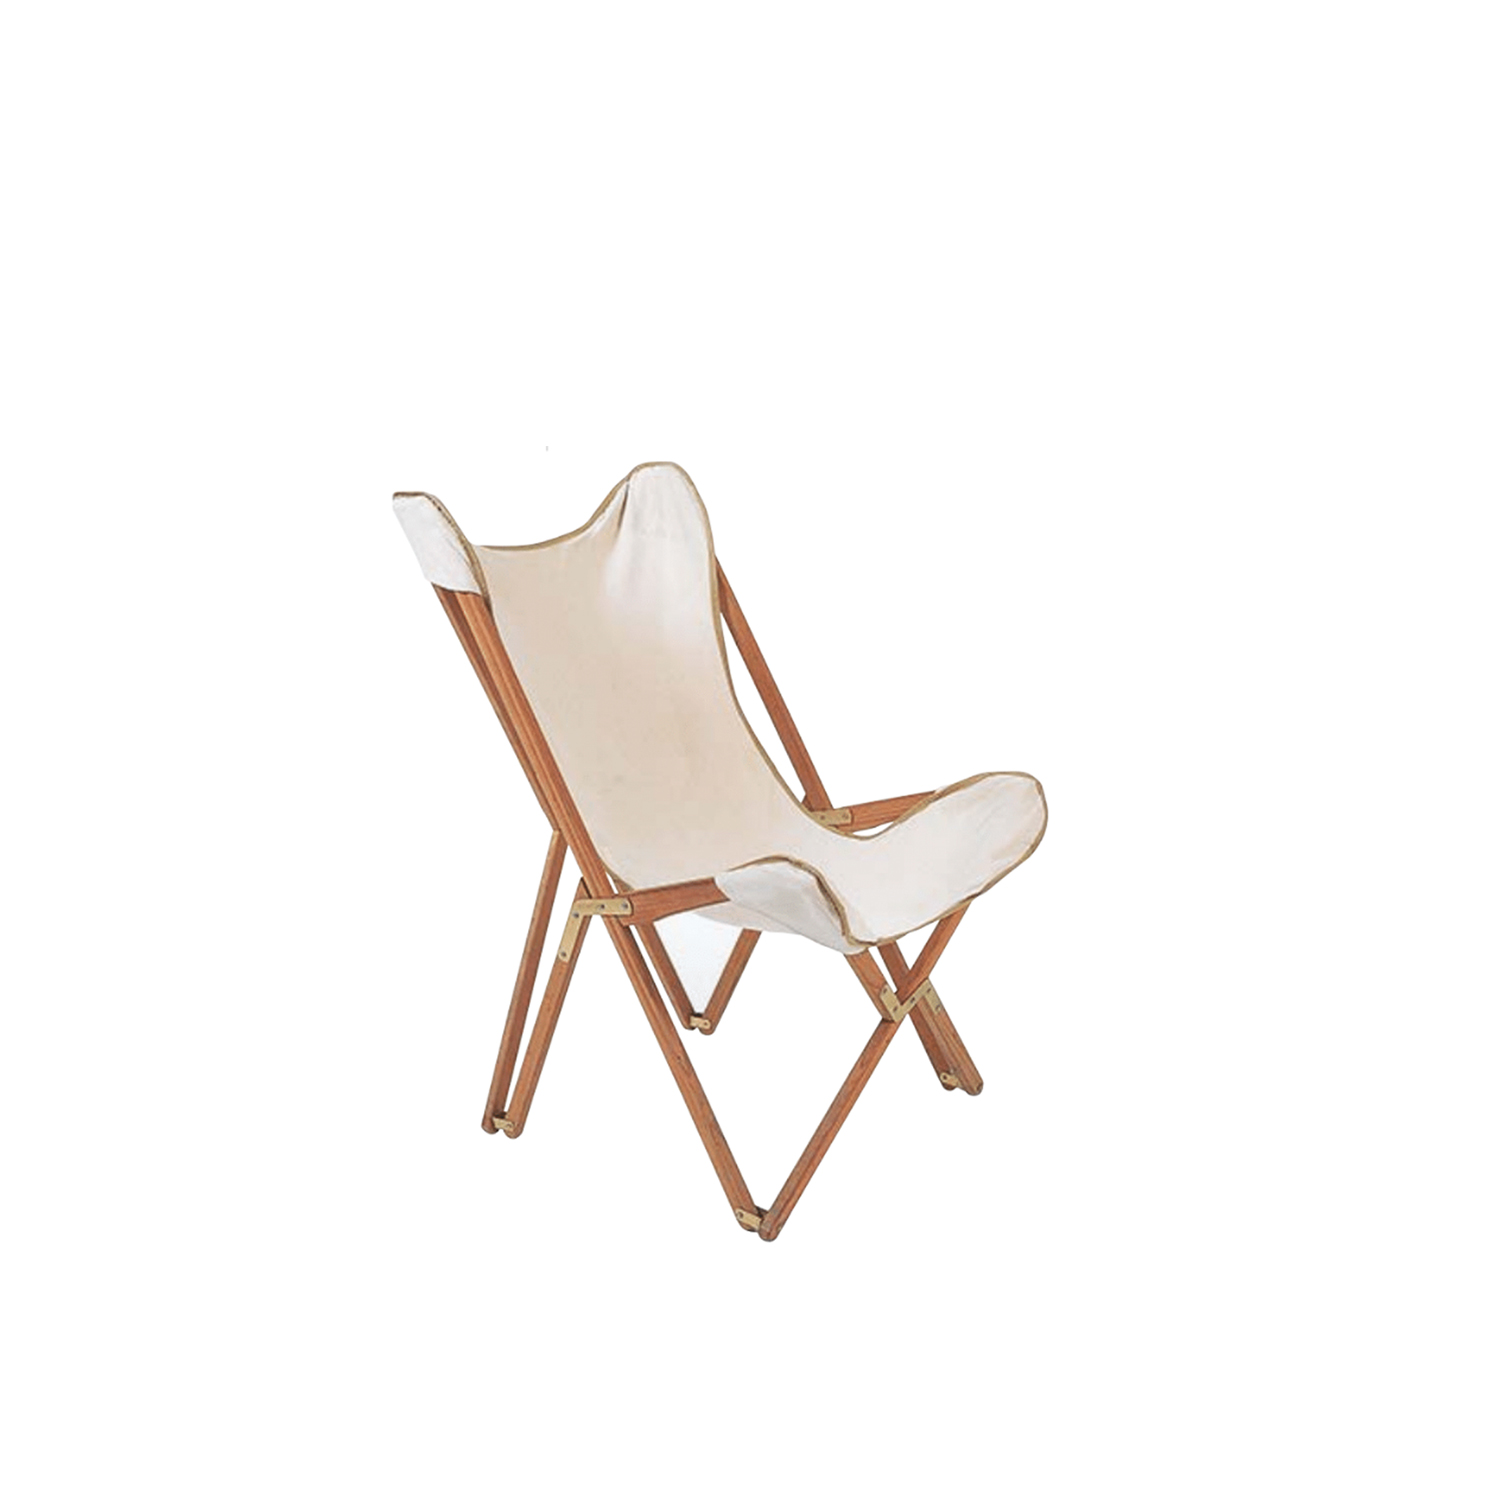 """Emy Cotton Chair  - Emy outdoor chair in 100% cotton canvas colour.   The inspiration came from the so-called """"Tripolina"""", created in the 19th century but reproduced by Italians in Libya in the 30s for camp life in the desert. The distinctive features of the Emy small armchair are its classic style and strong personality.  Also available in leather for indoor use in five different shades, Emy leather armchairs are unique, exclusive and refined products for elegant interior design furnishing.     Matter of Stuff"""